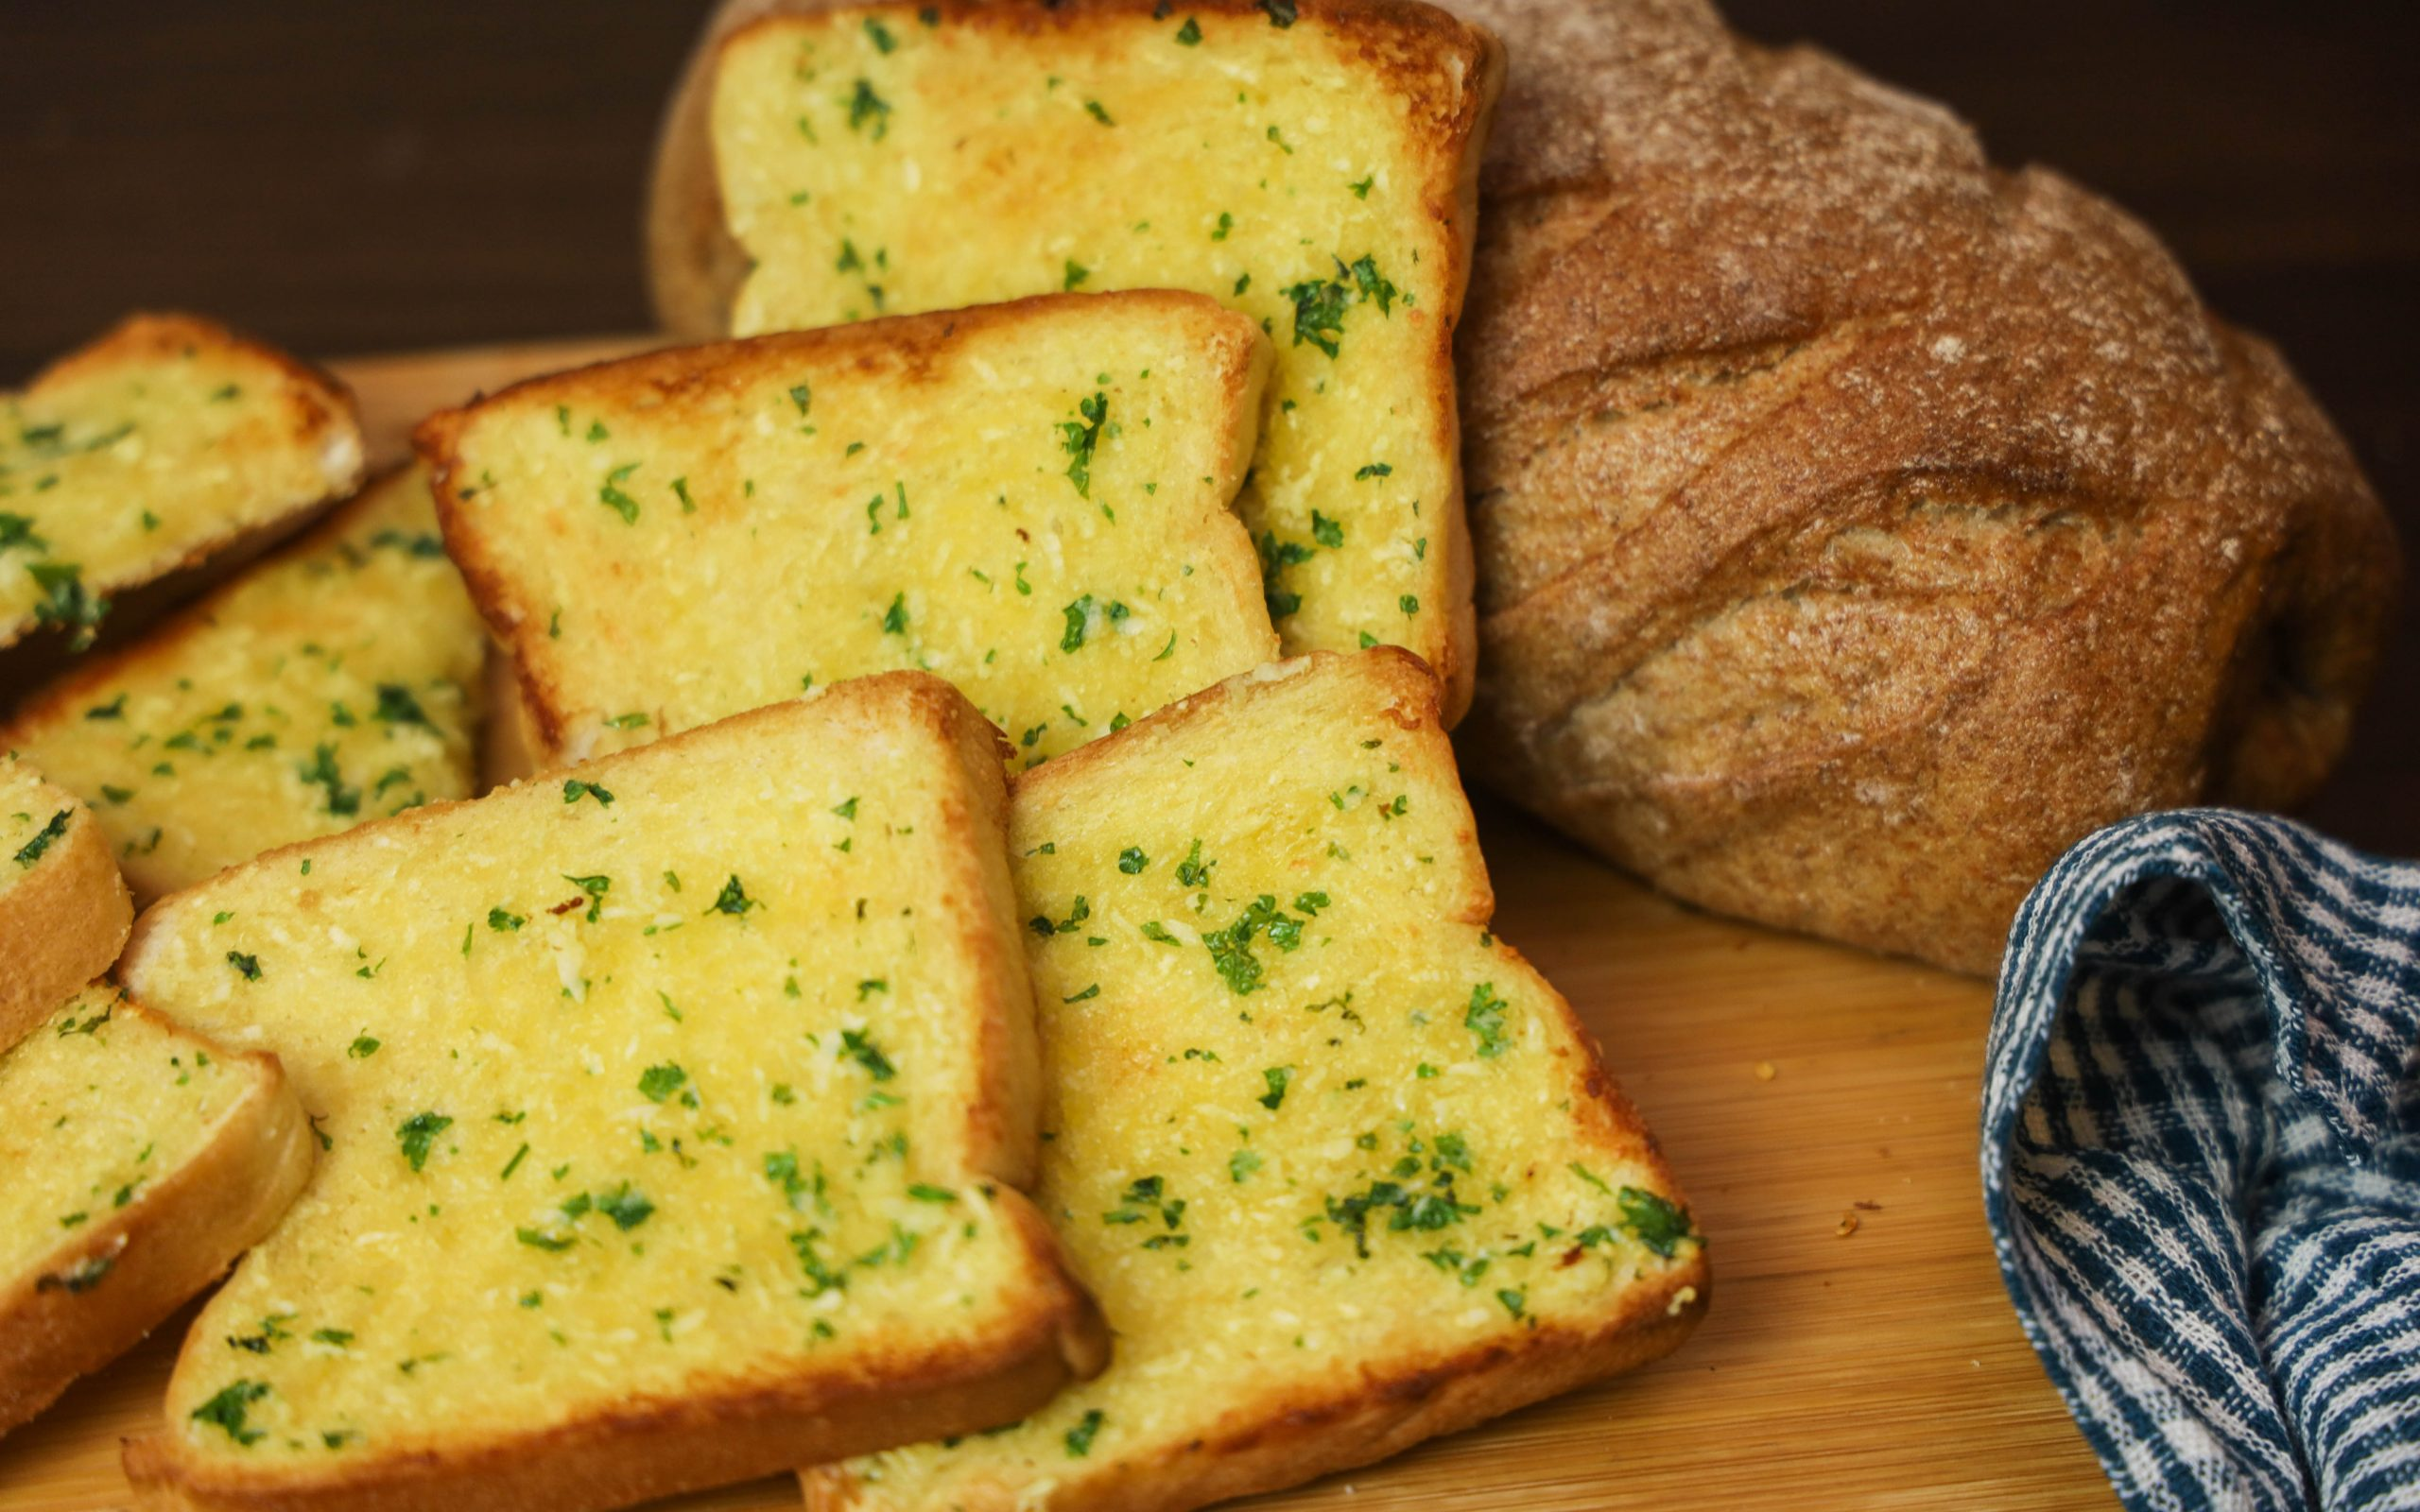 How to Make Garlic Bread at Home Using Toaster Oven